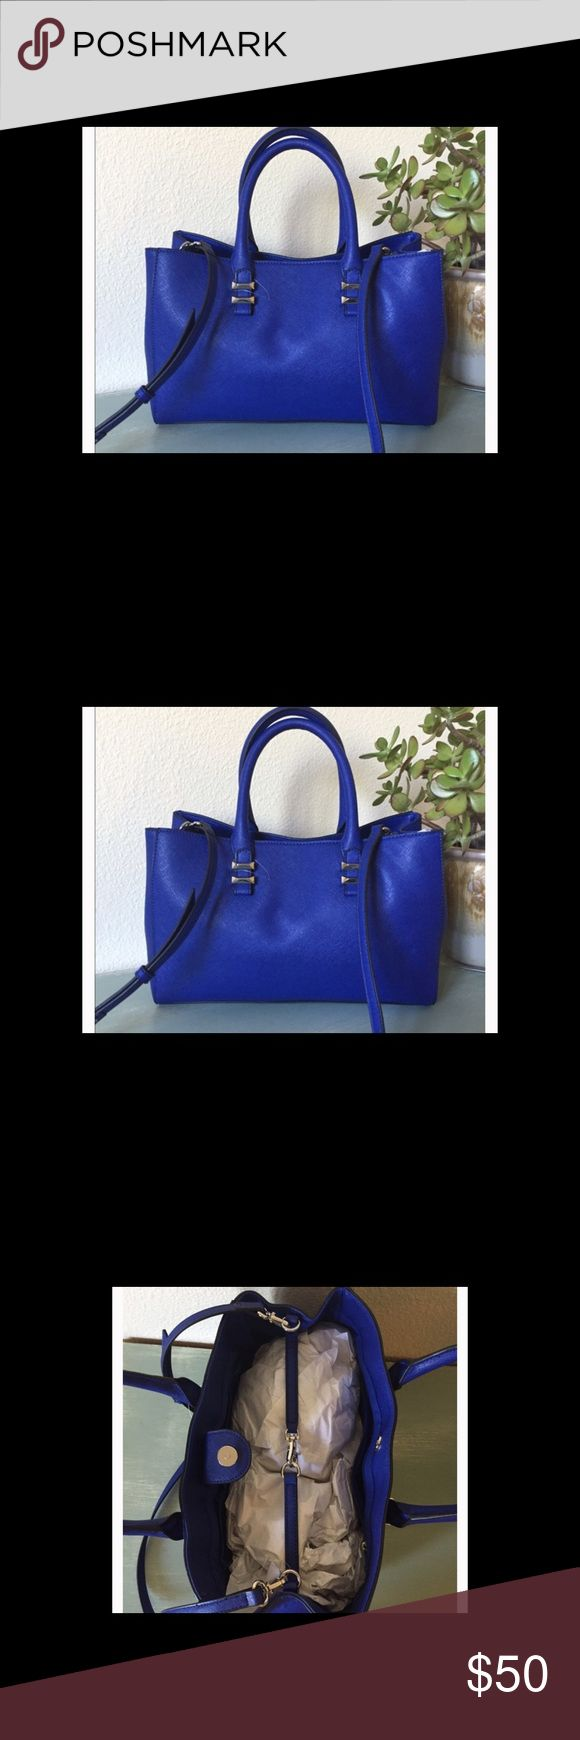 """Banana Republic tote Brand new blue buckle  tote from BR. No tardes . Bag is gorgeous. Selling at lowest price . No offers . Bag measurements are 12x8x5 strap 33'-37"""". Handles is 15"""" Banana Republic Bags Totes"""